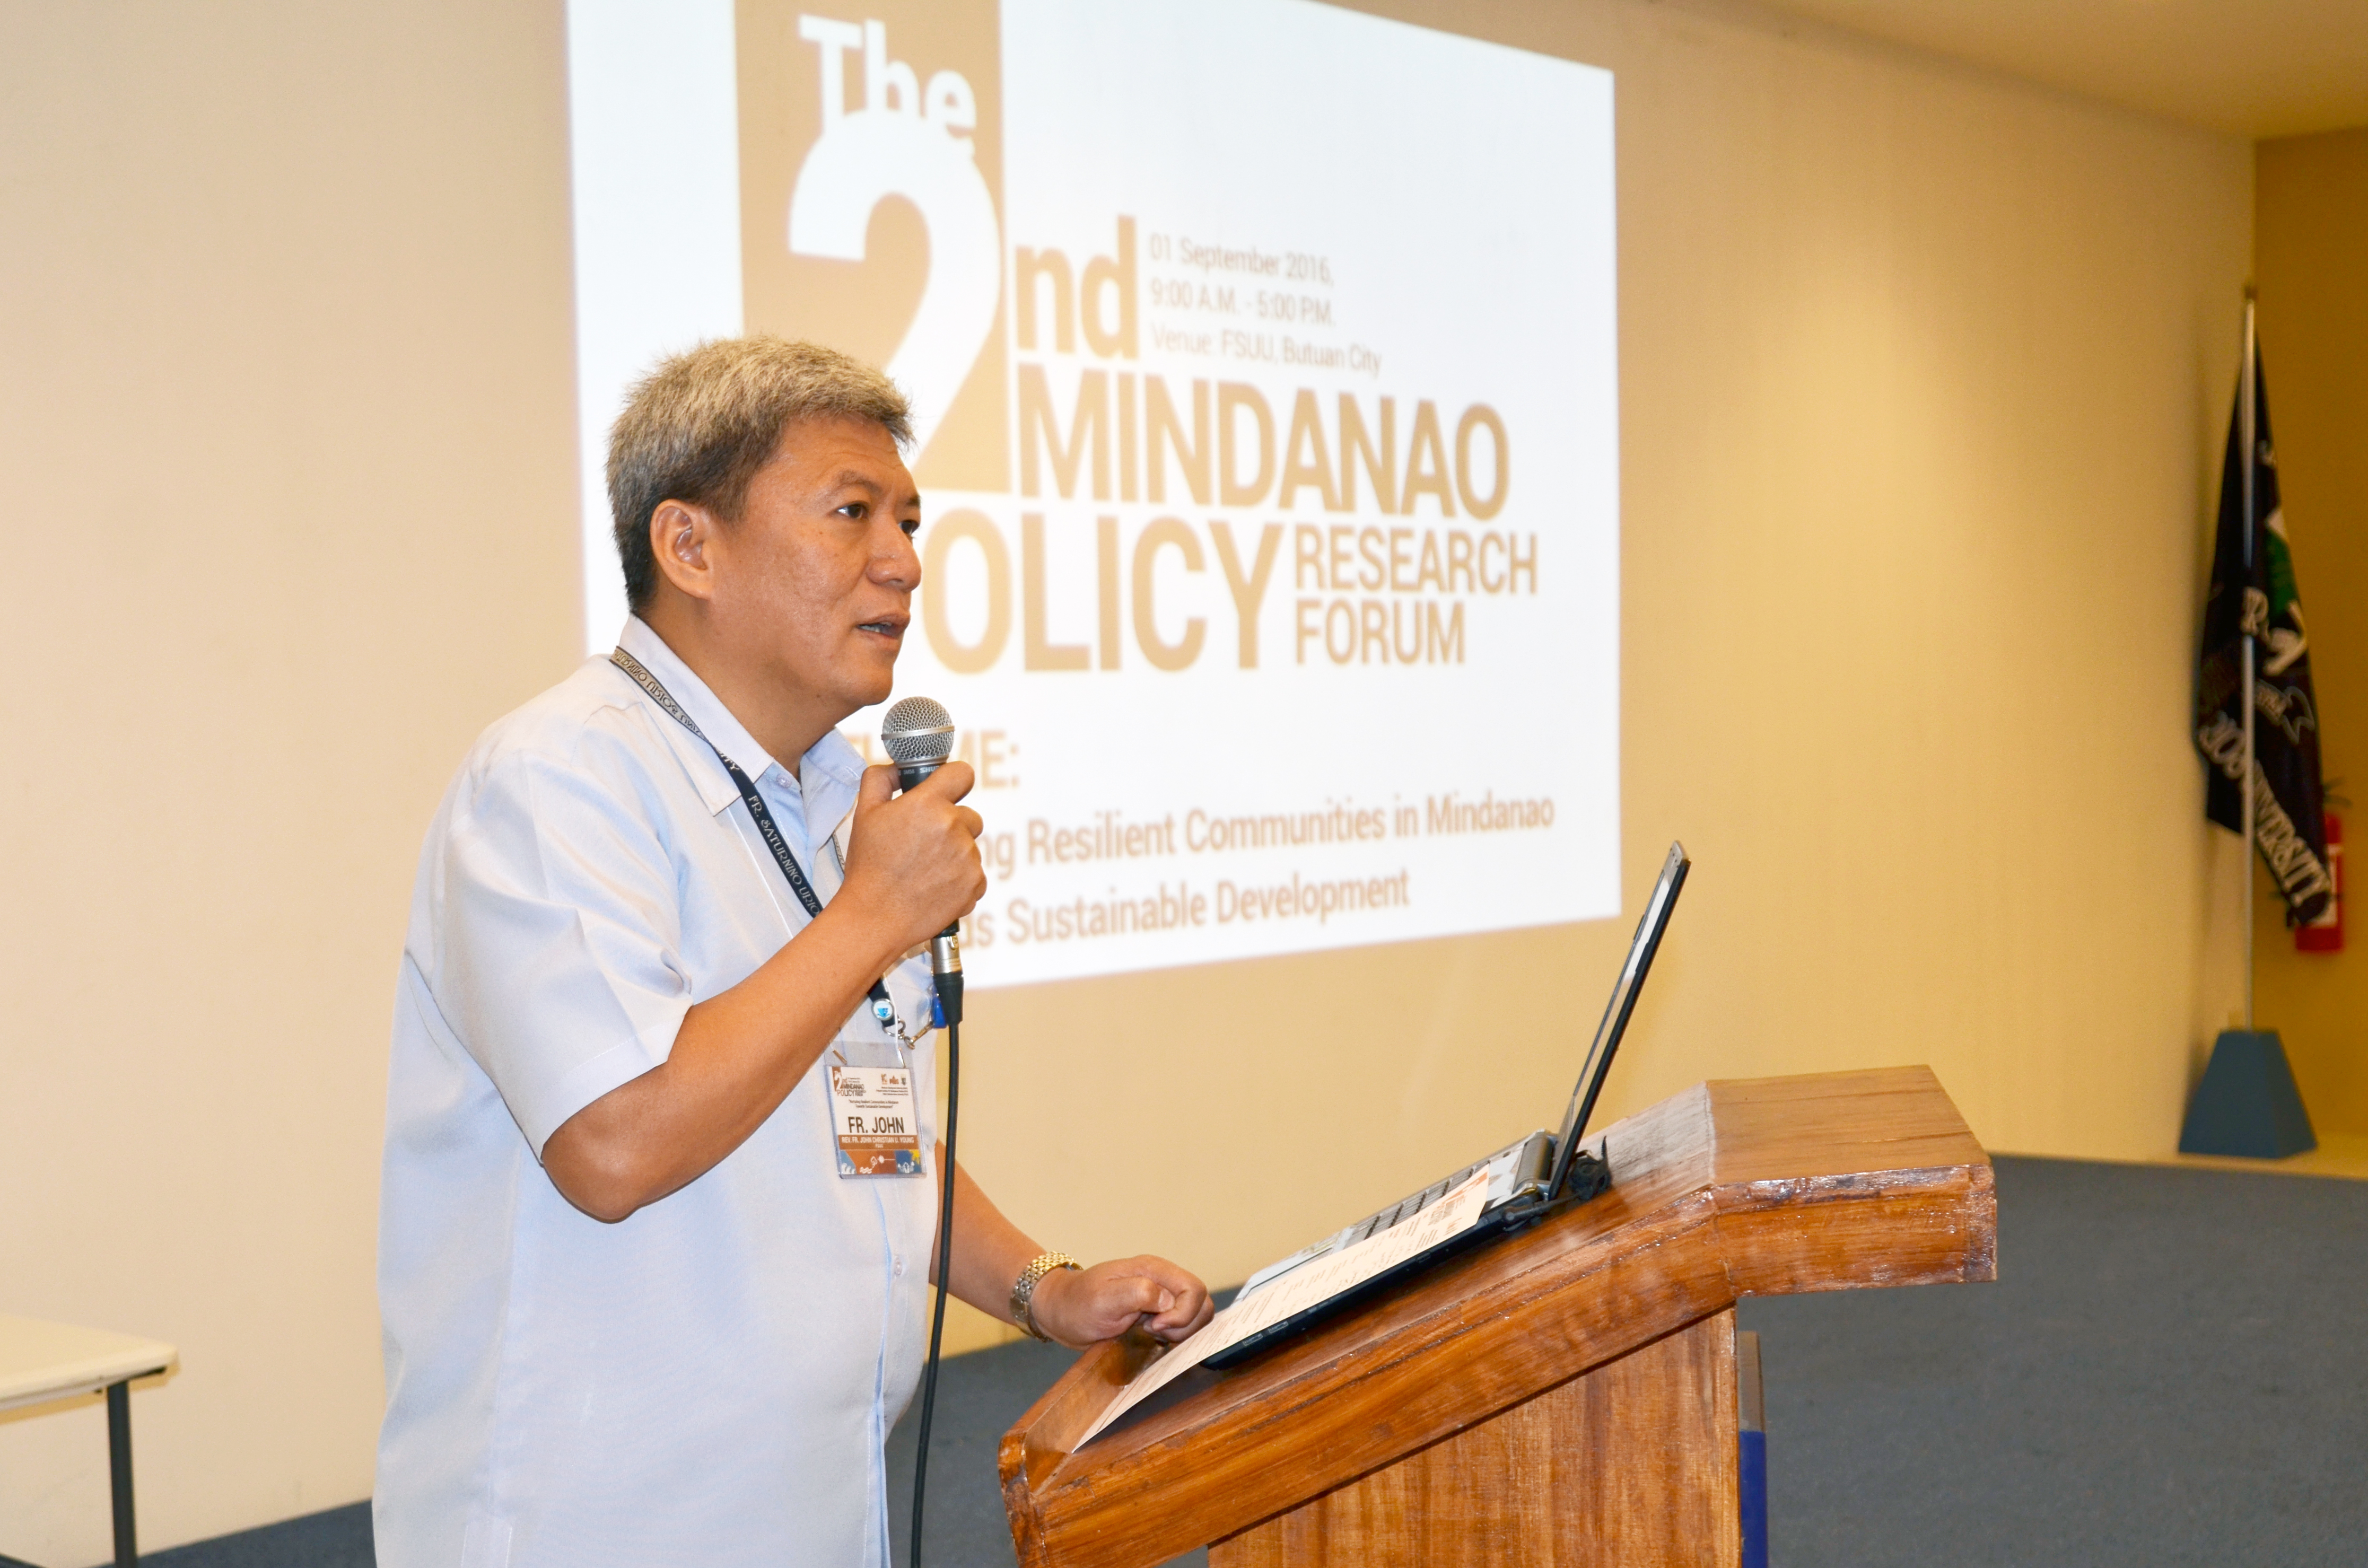 Research and policy stakeholders in Mindanao join forces at the 2nd Mindanao Policy Research Forum